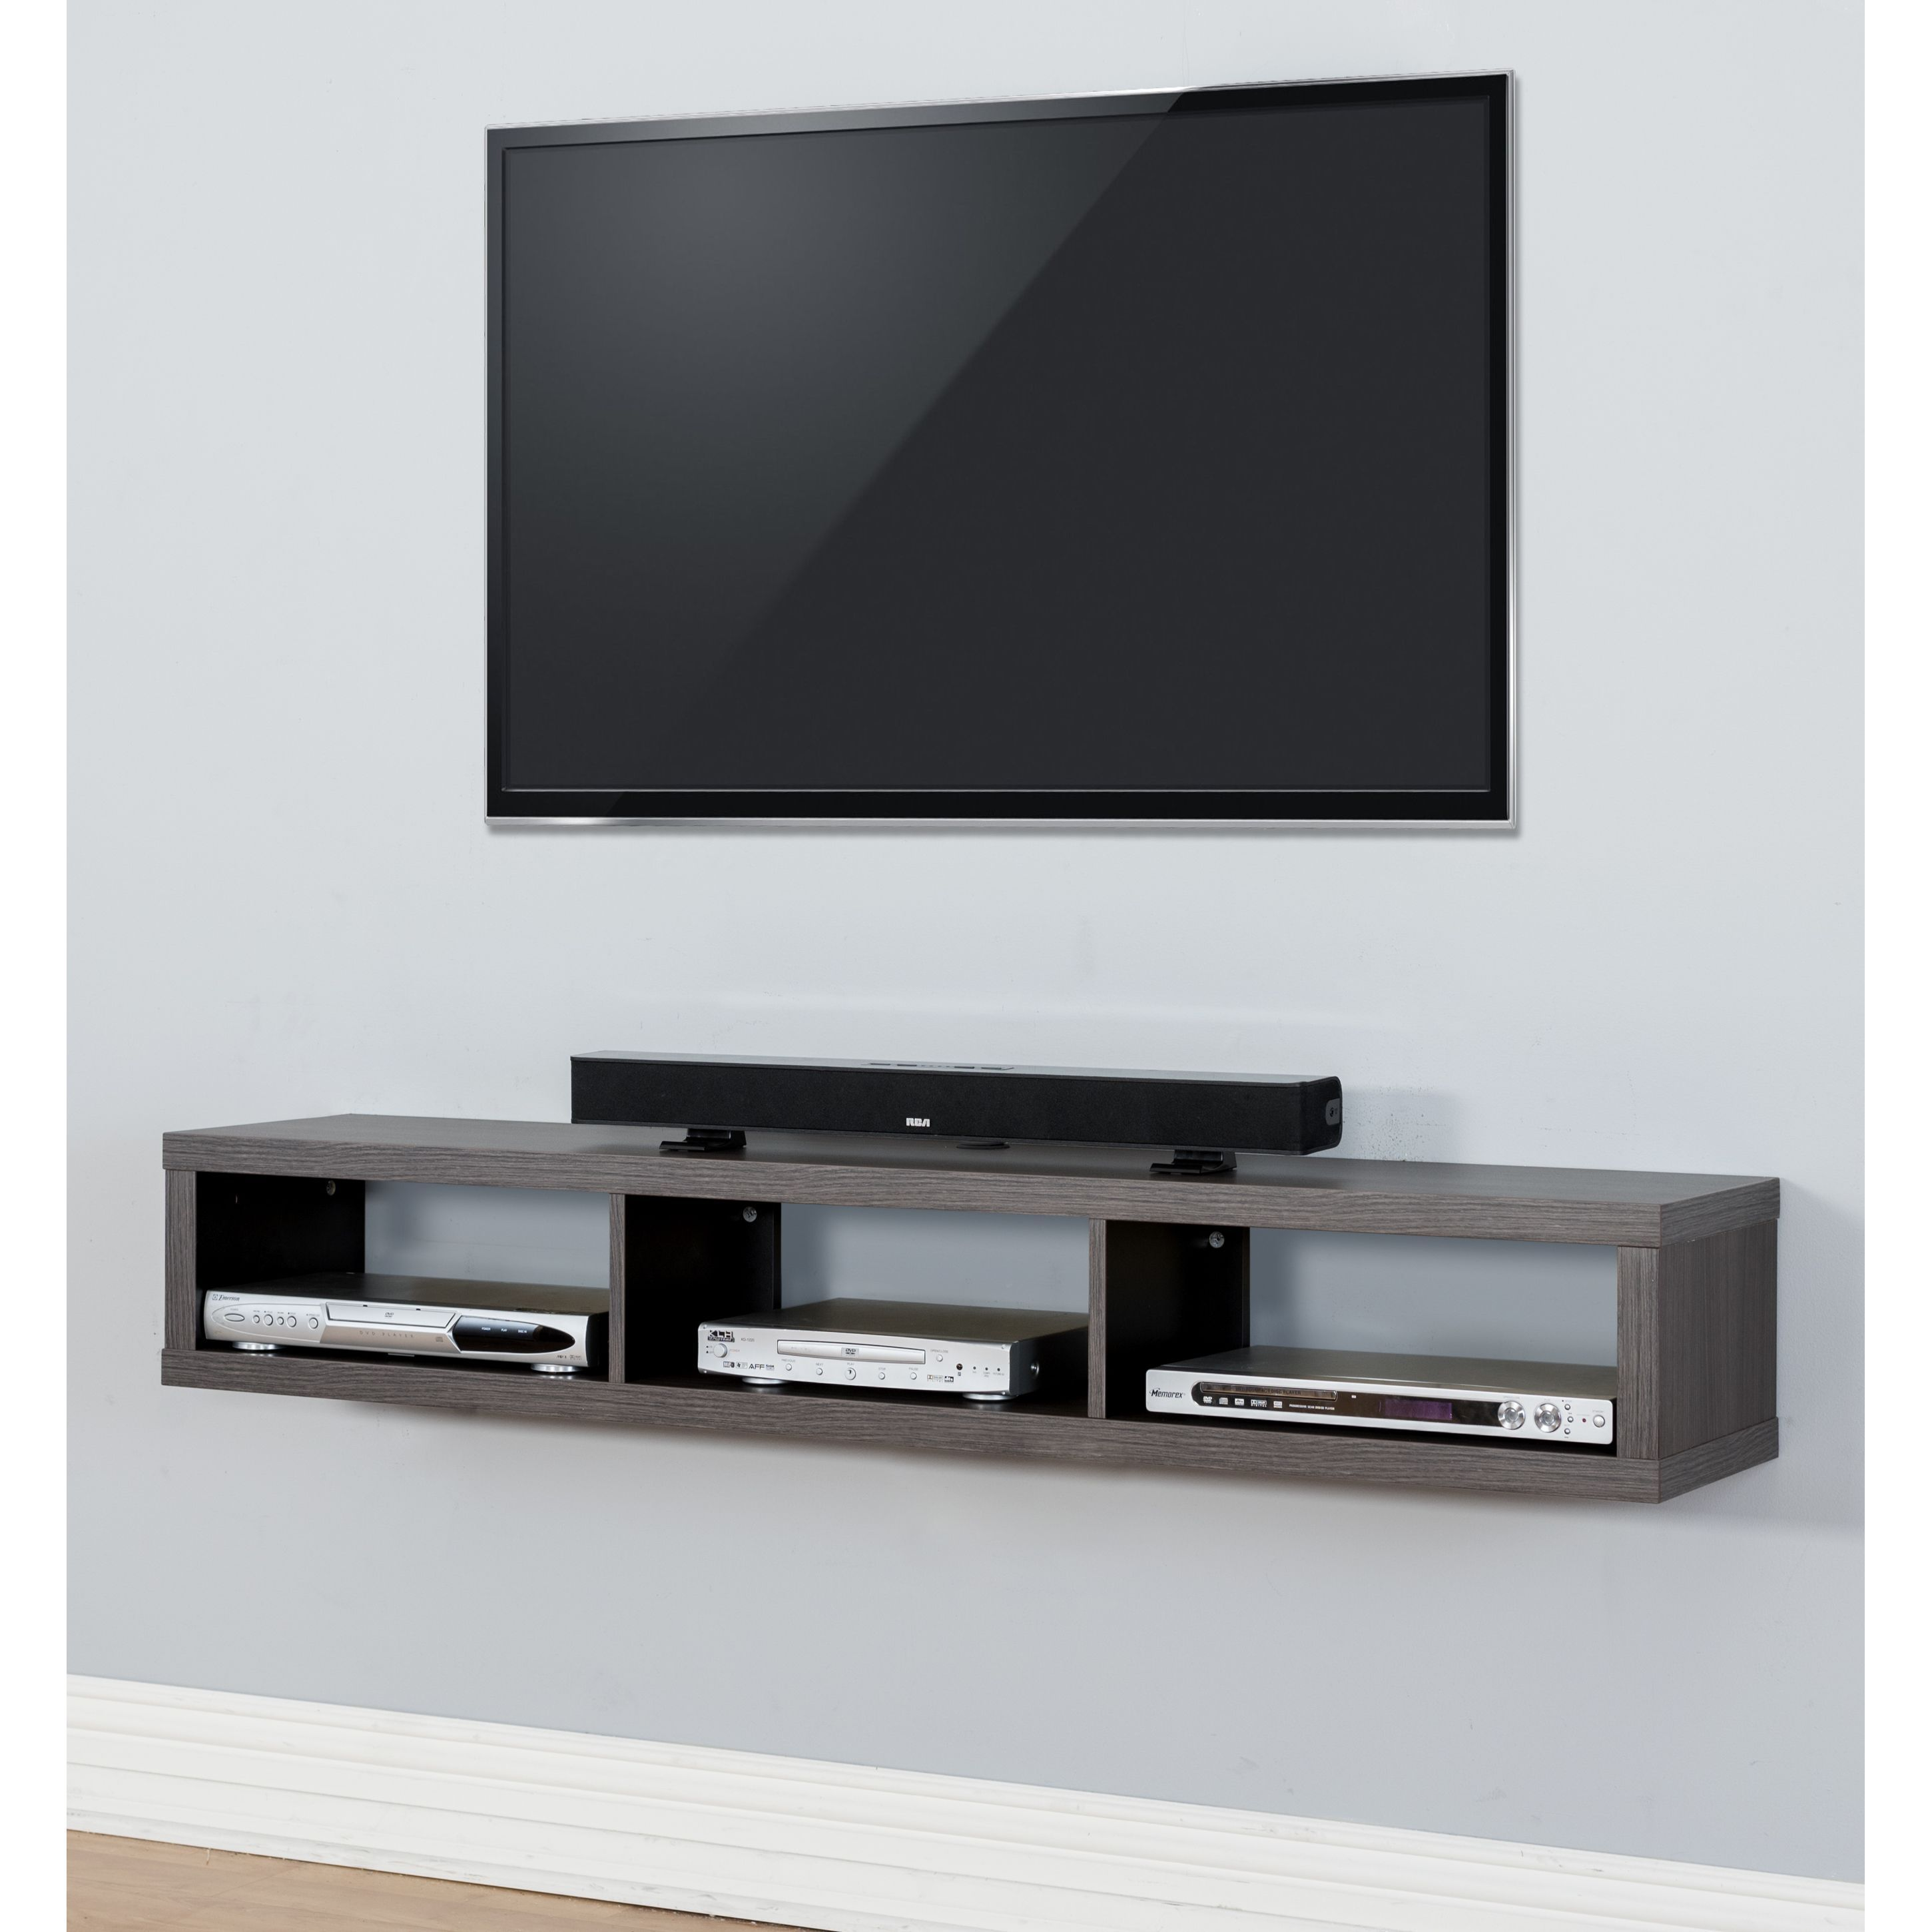 The Functional And Upscale Appearance Of This Wall Mounted Tv  # Table De Televiseur